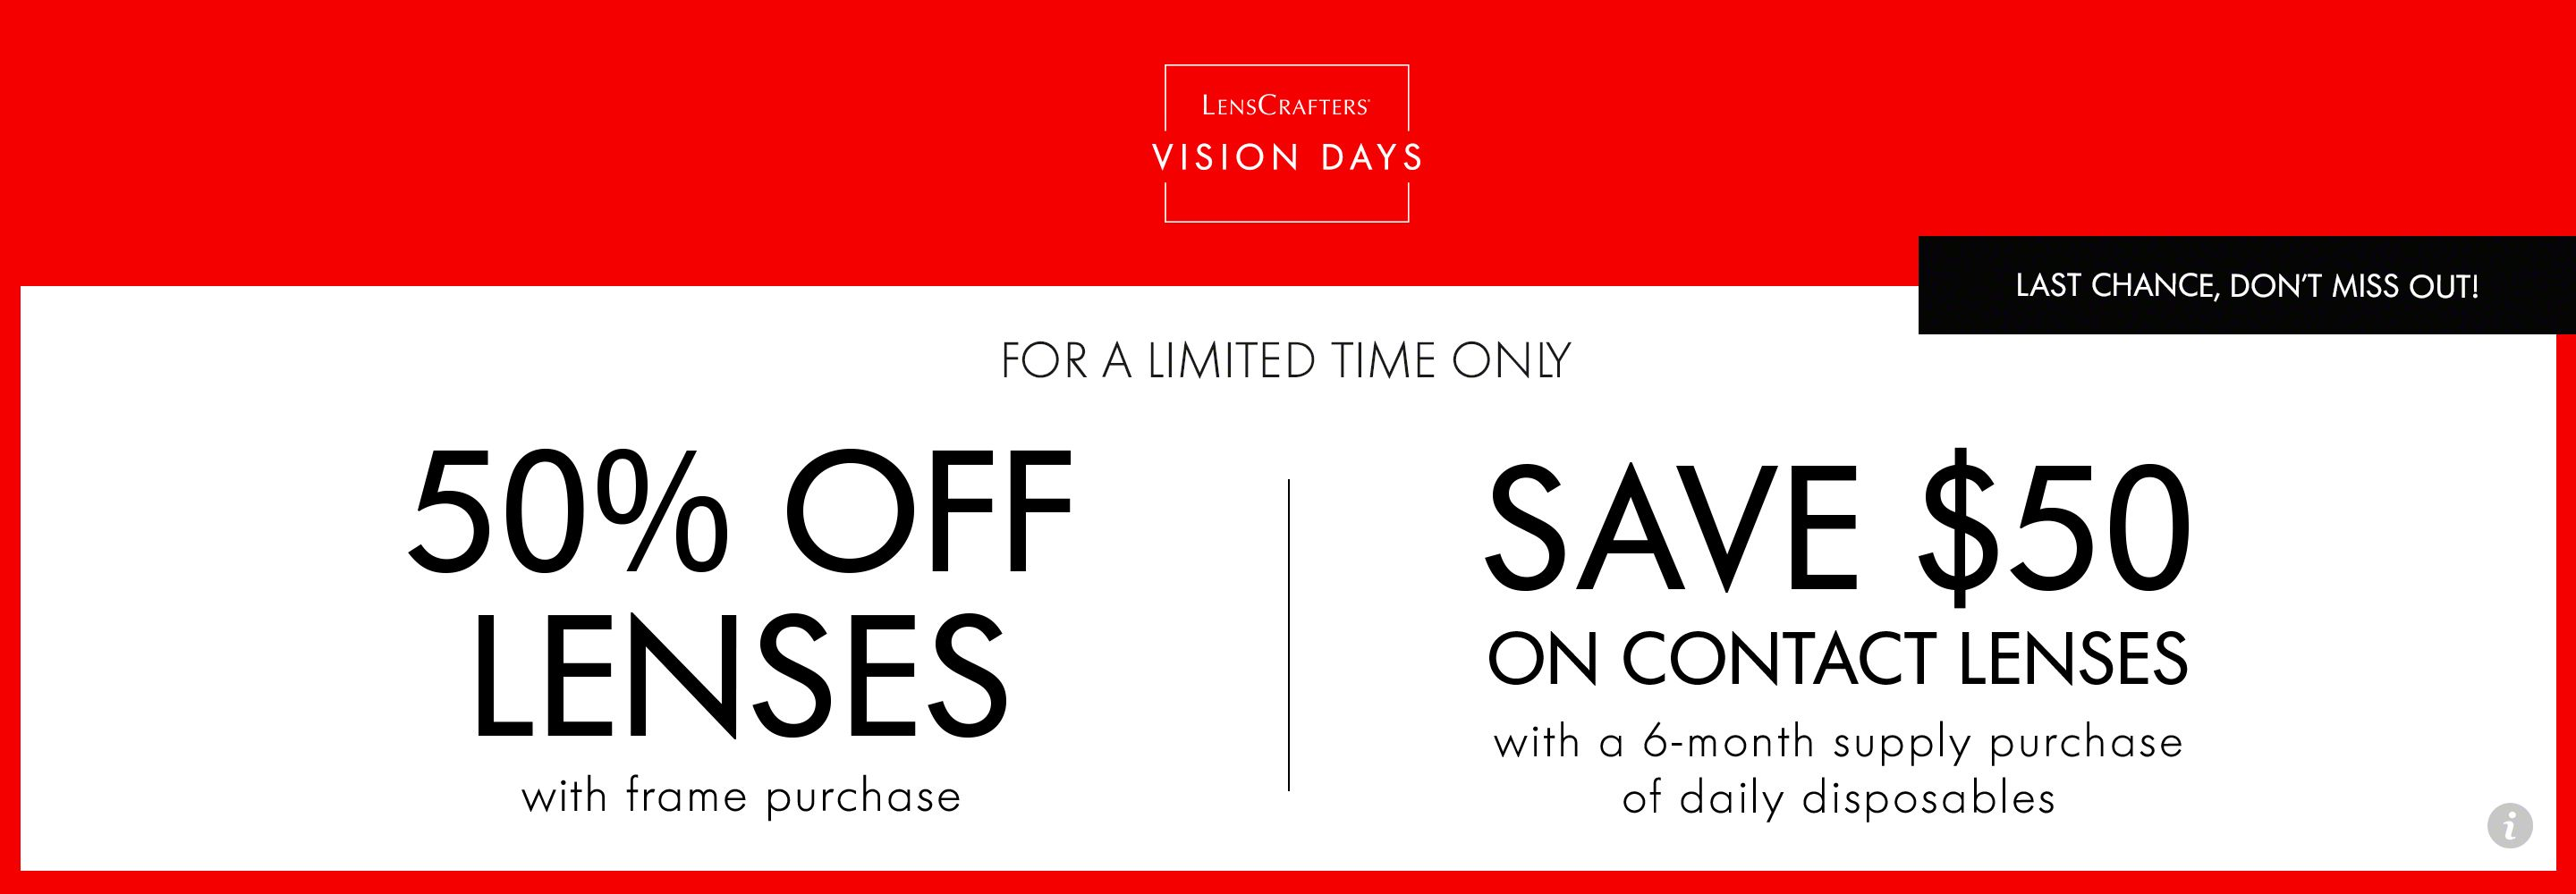 Vision Days promotions